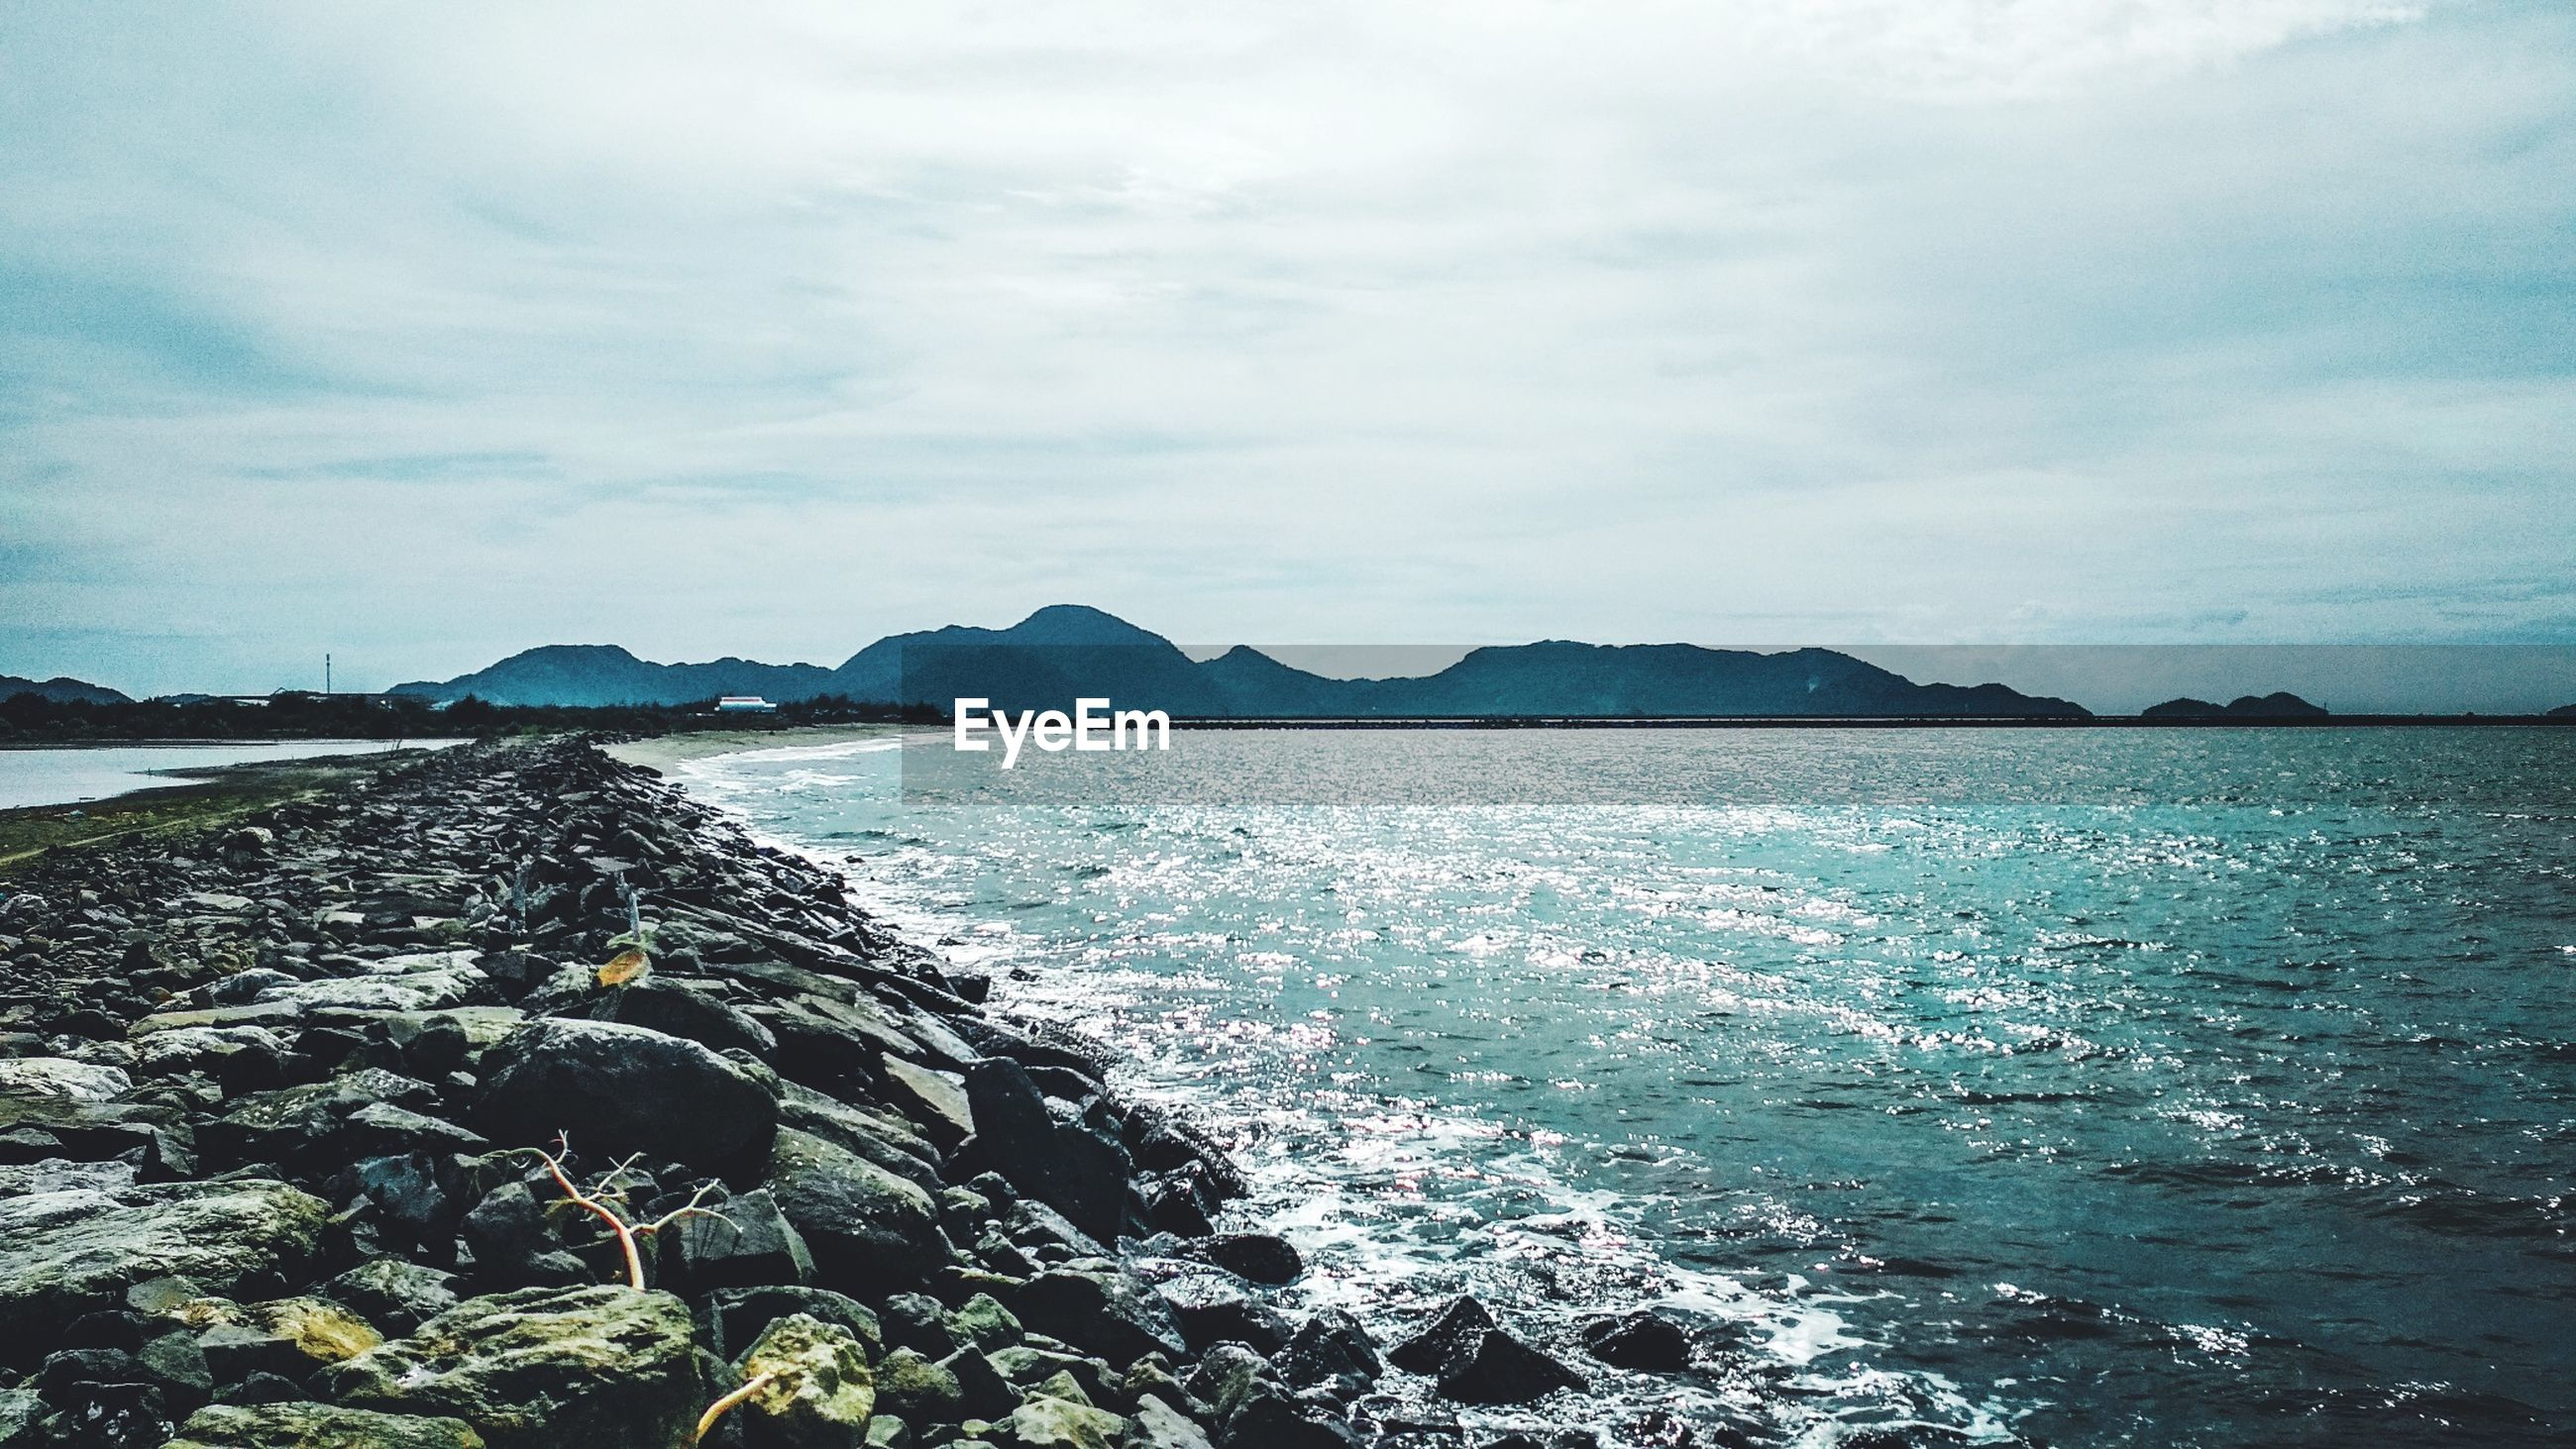 SCENIC VIEW OF SEA BY MOUNTAIN AGAINST SKY